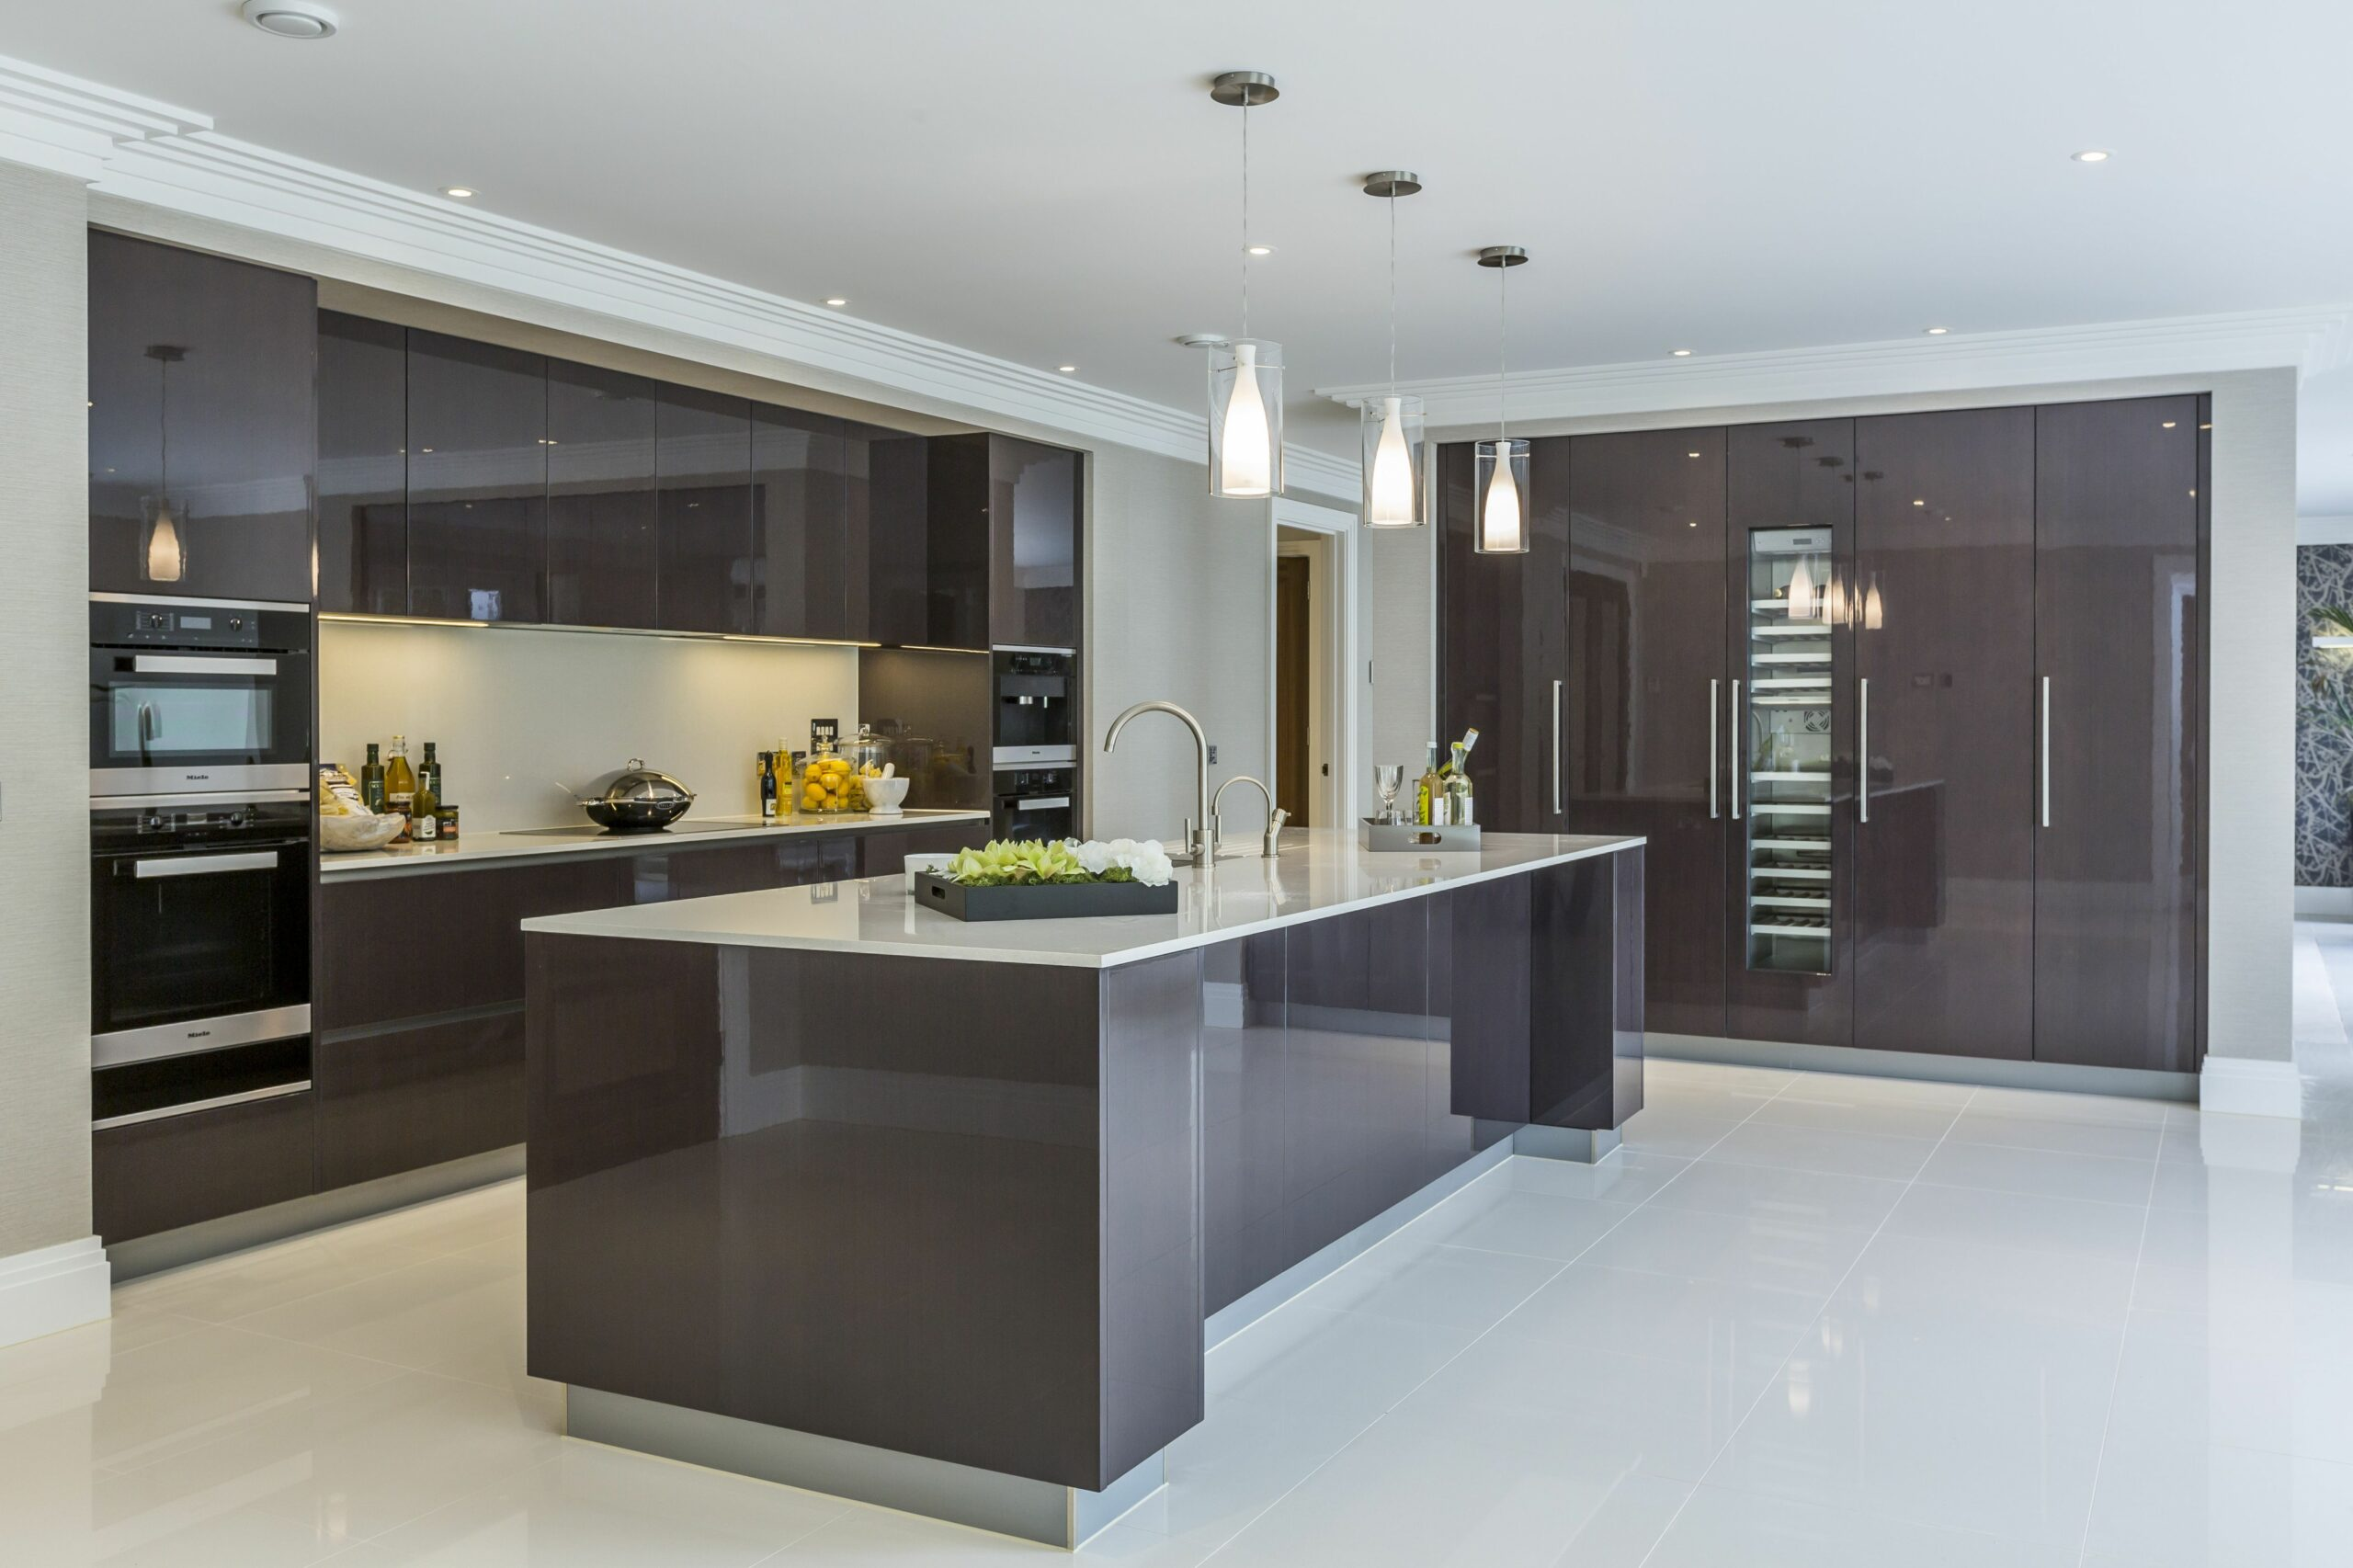 EXTREME Contemporary minimal high gloss kitchen design in private ..